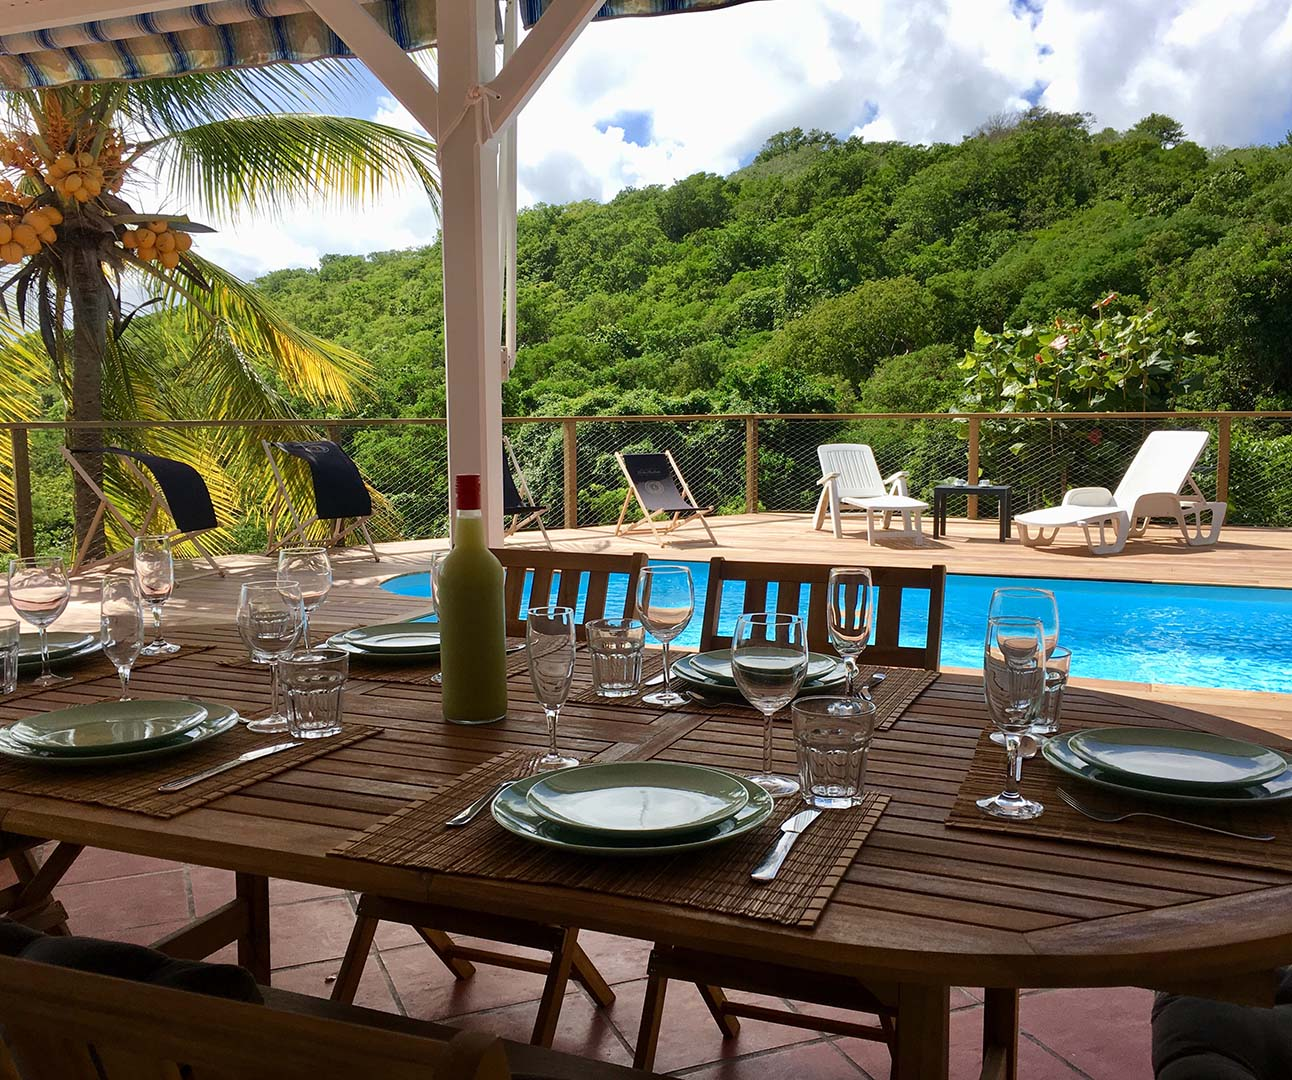 location villa martinique - parking, piscine, terrasse, climatisation, barbecue, 6 personnes